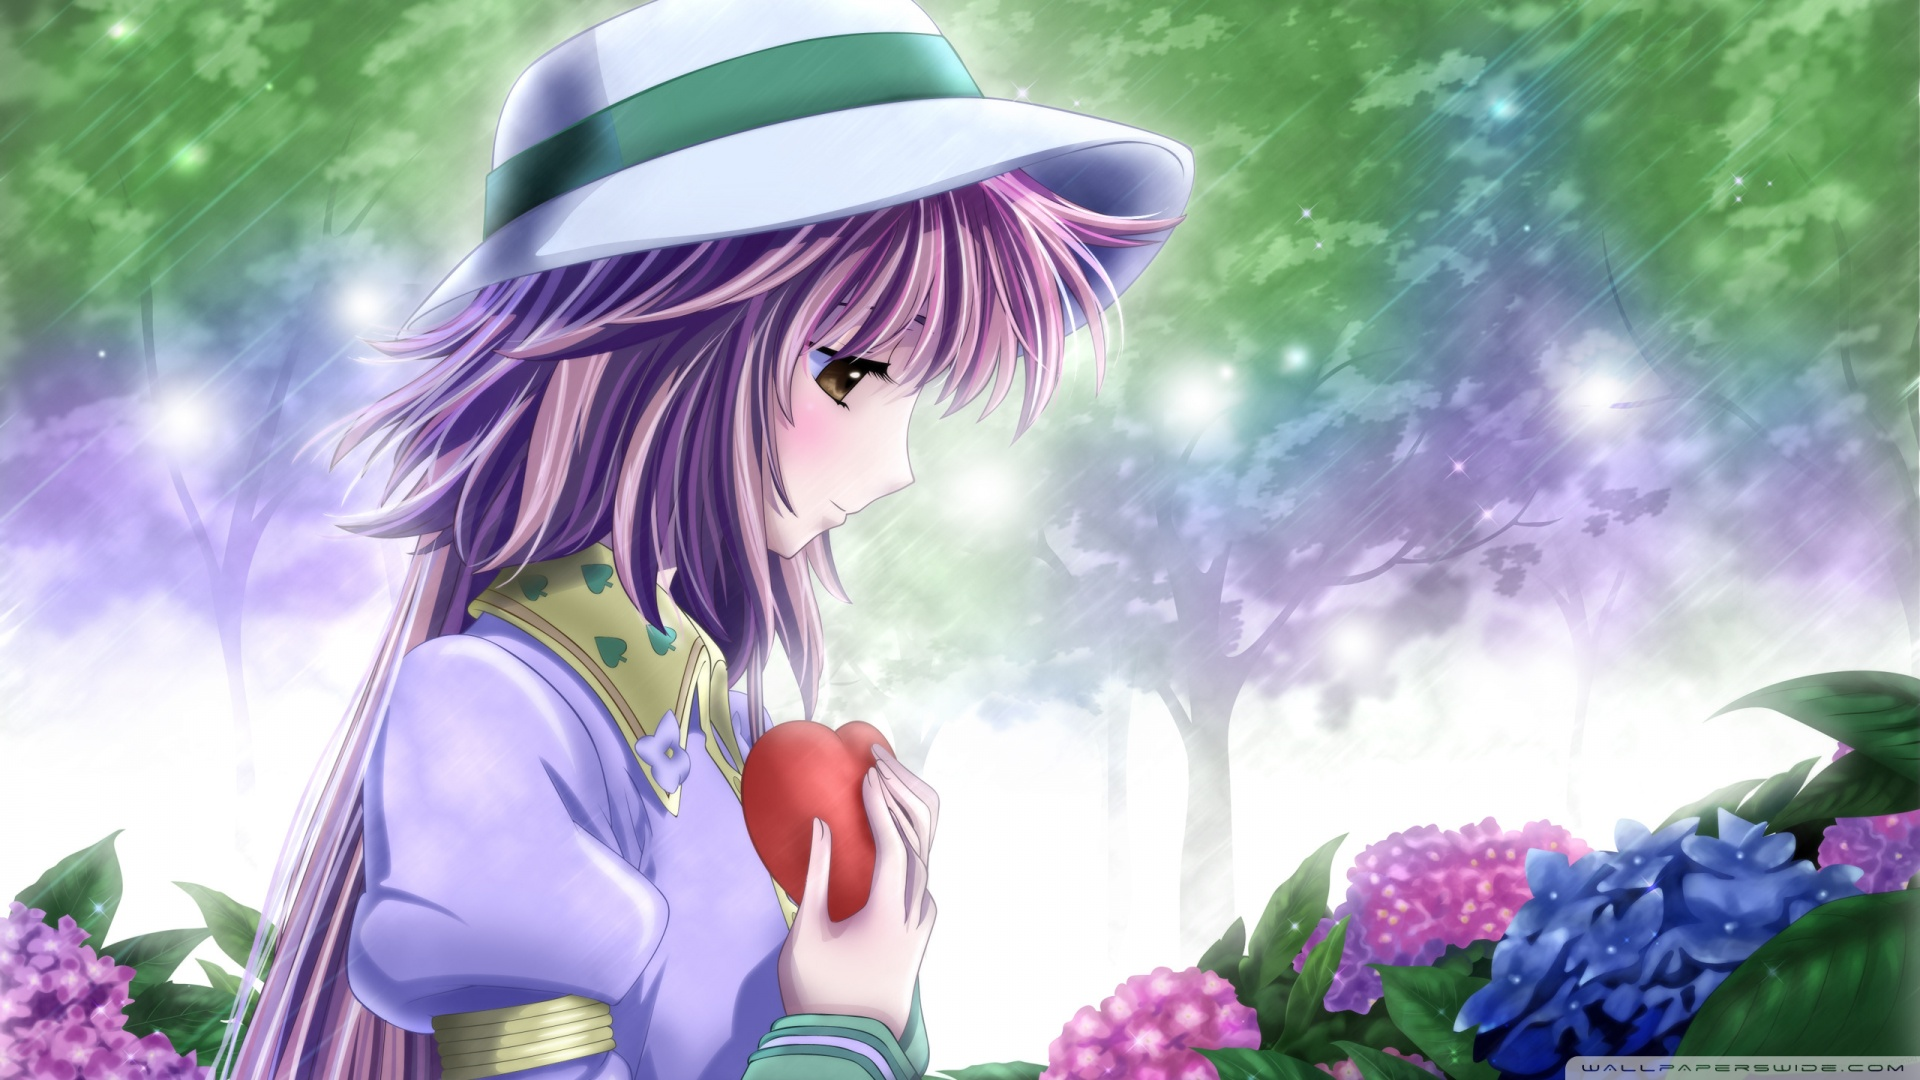 Anime Love Wallpapers: Cute Anime Wallpaper 1920x1080